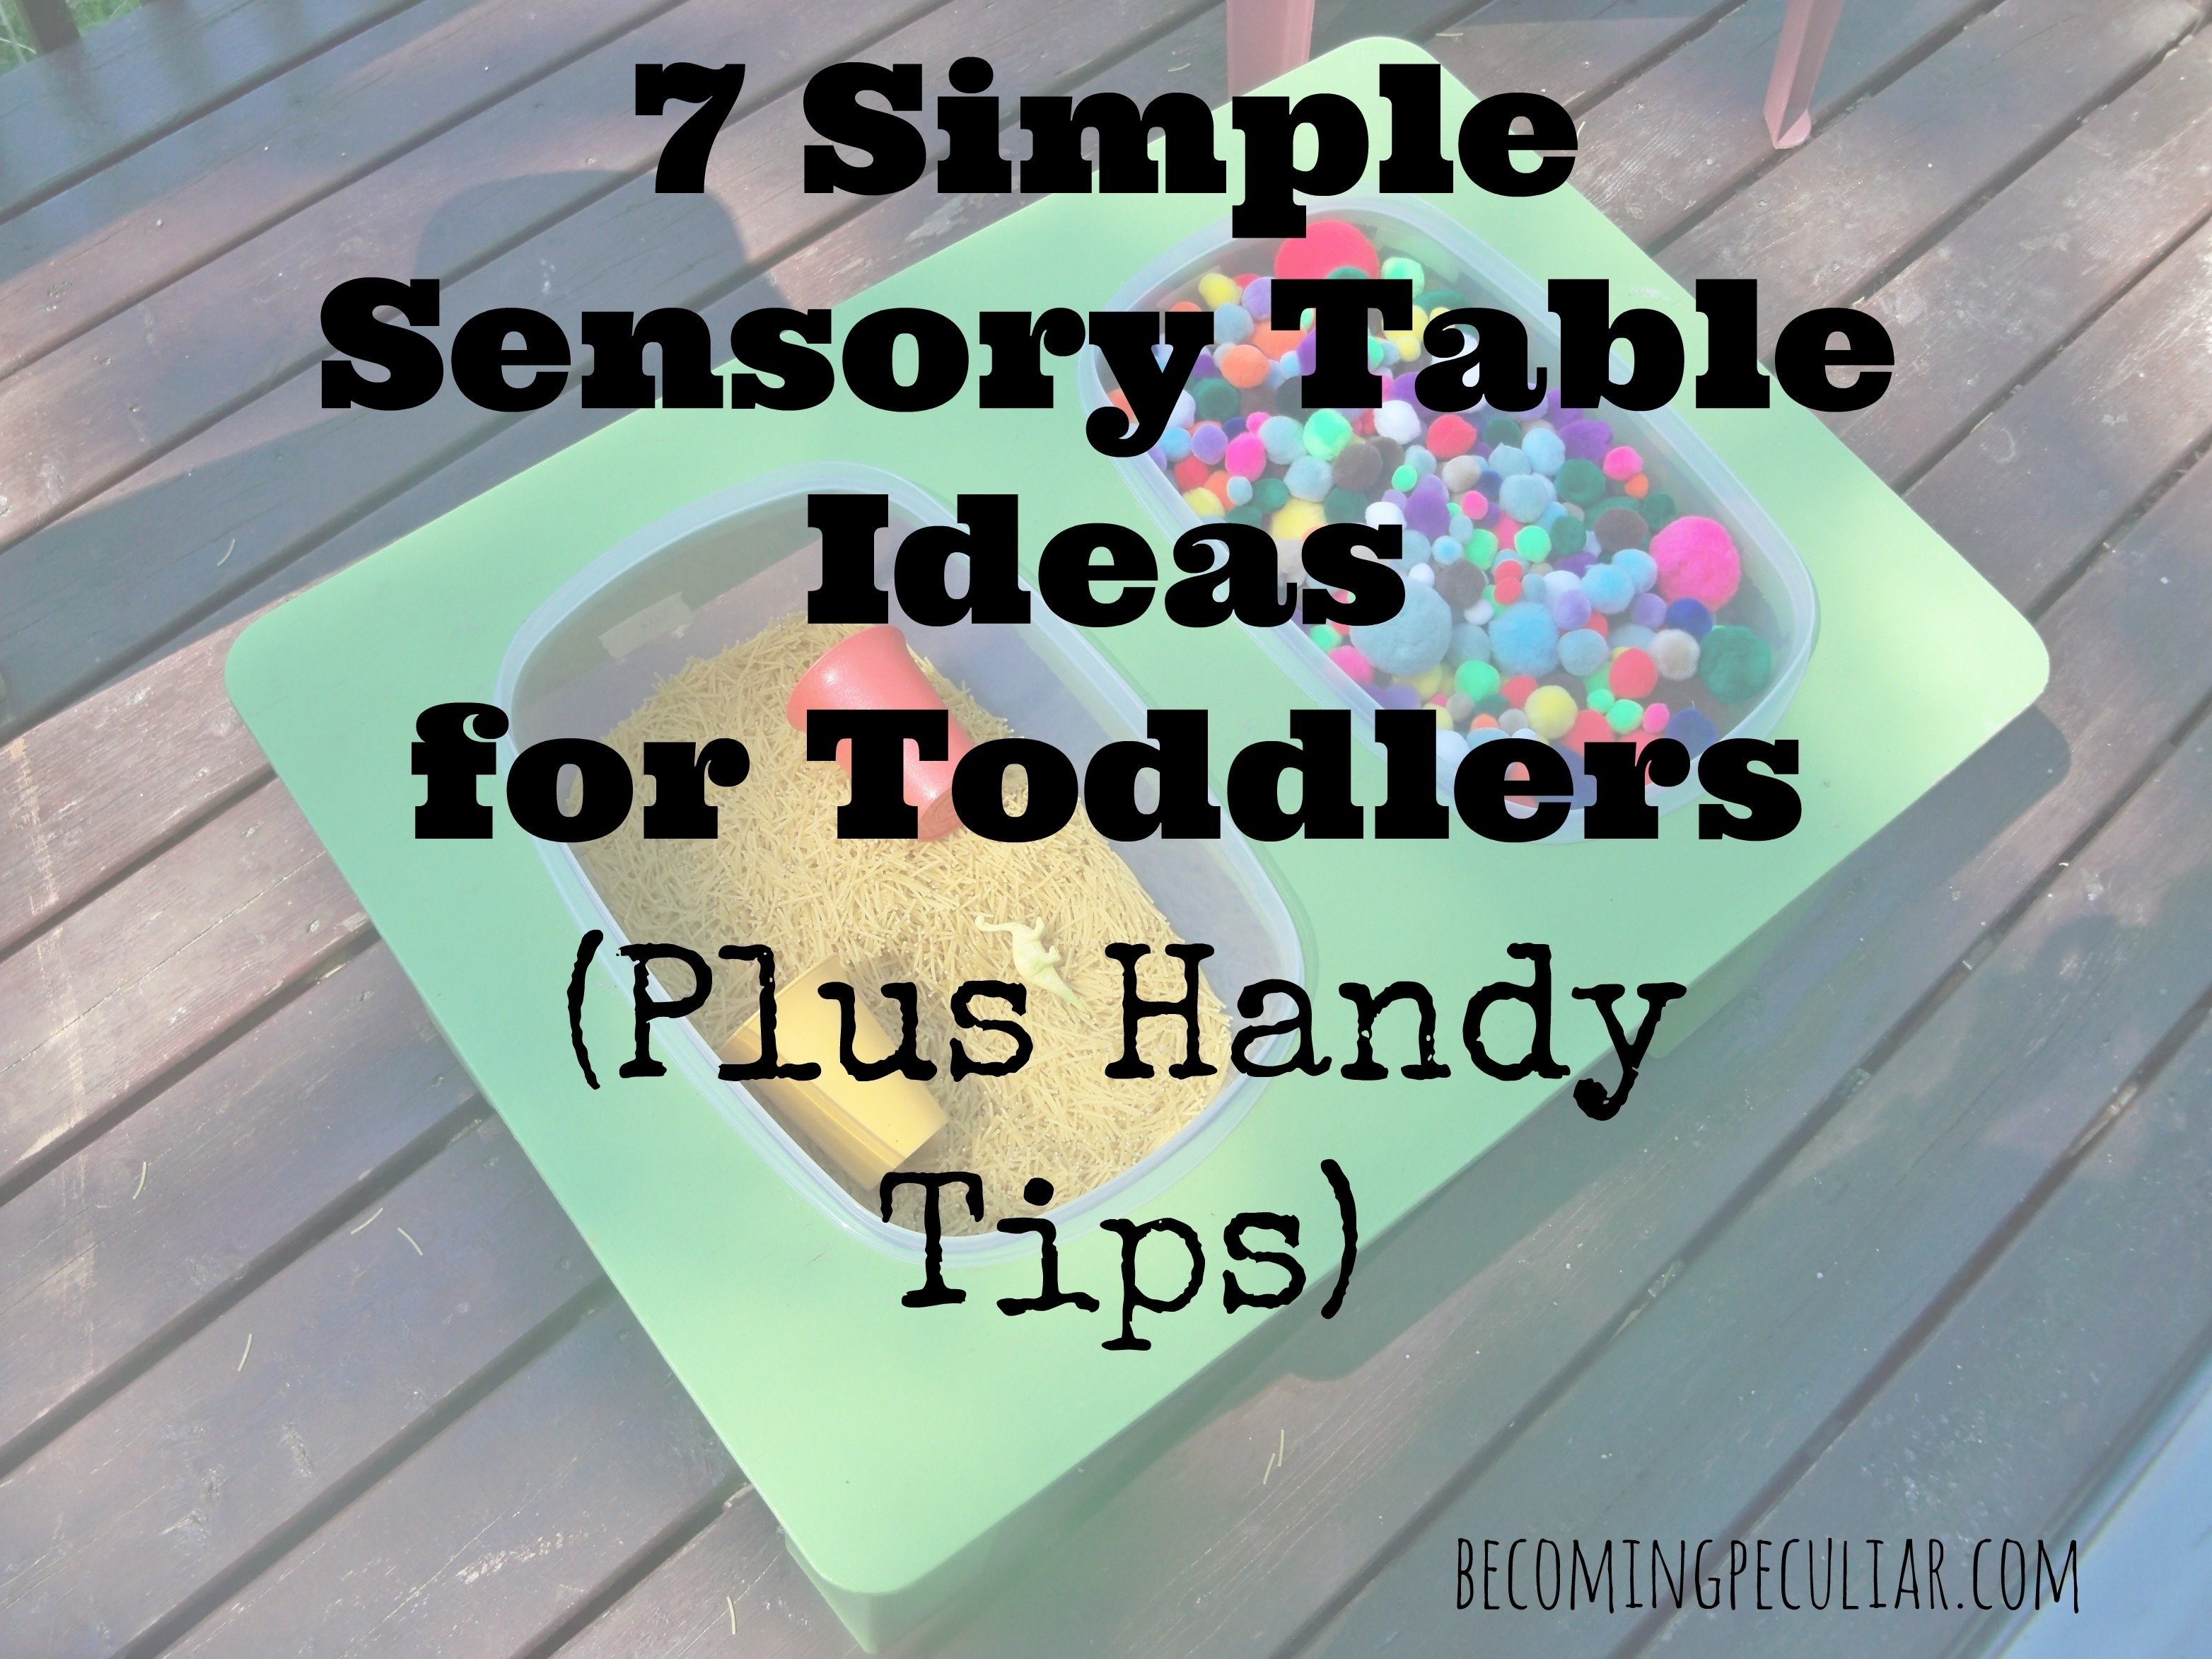 10 Nice Sensory Table Ideas For Toddlers